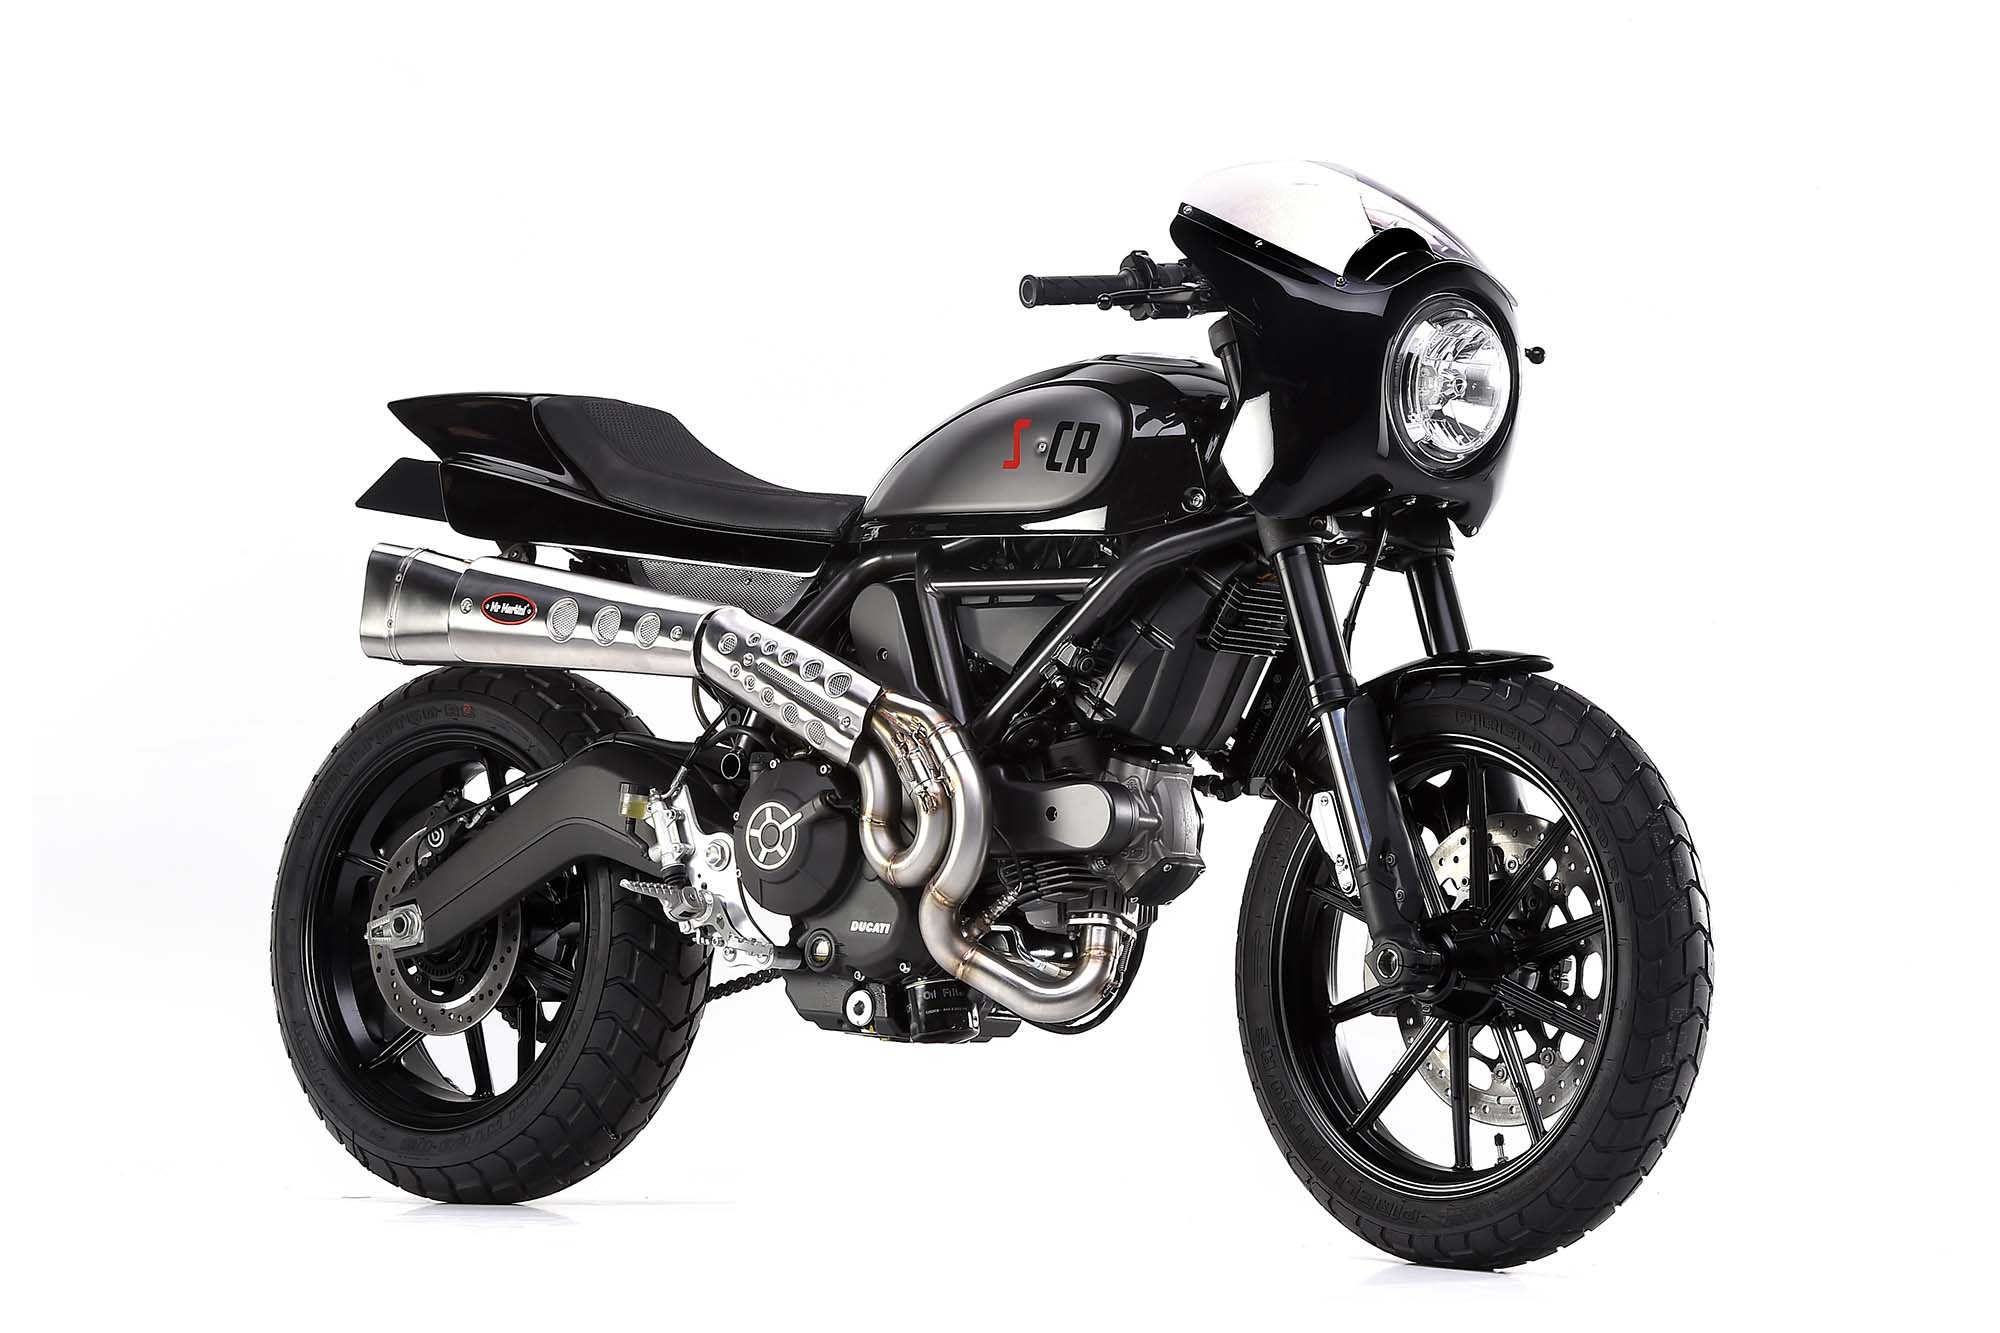 Ducati Scrambler Discussion